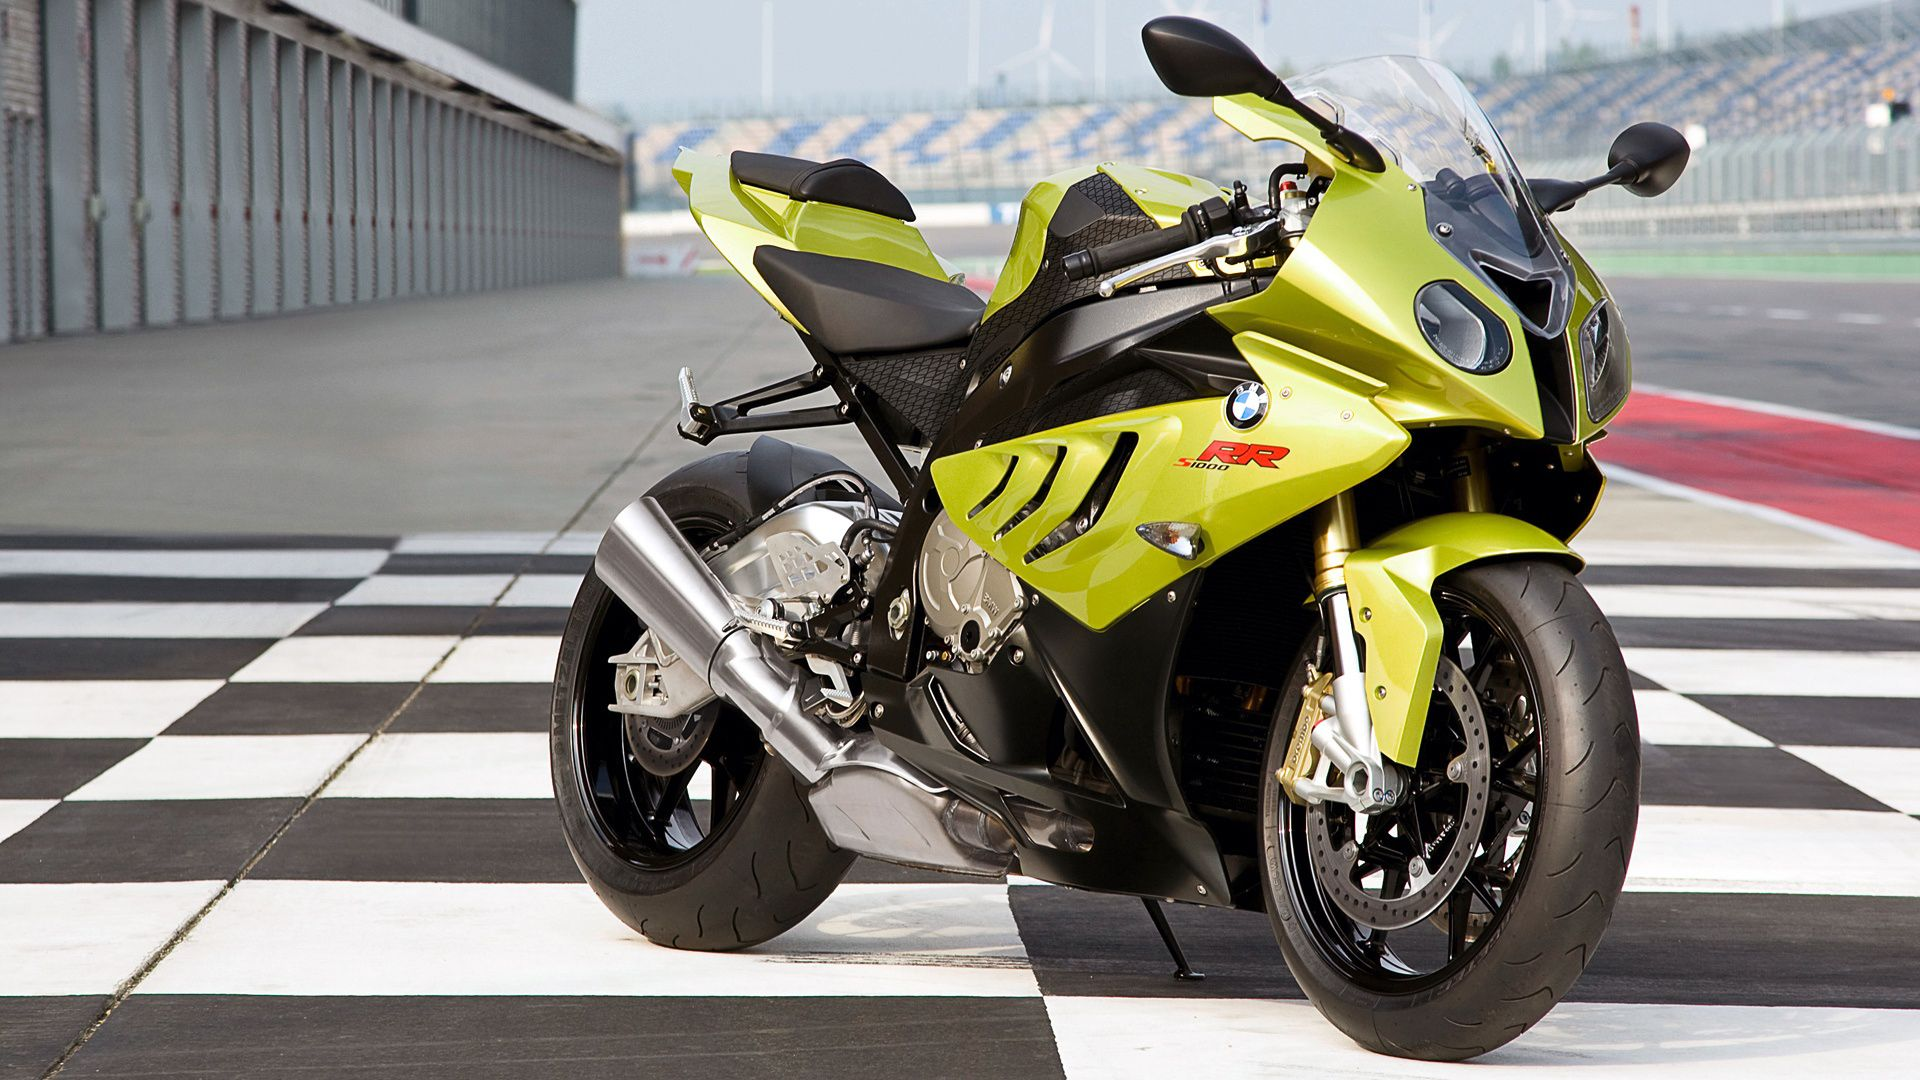 Yellow Bmw Sports Bike Hd Wallpaper Bmw S1000rr Bmw Motorcycles Bmw Sport